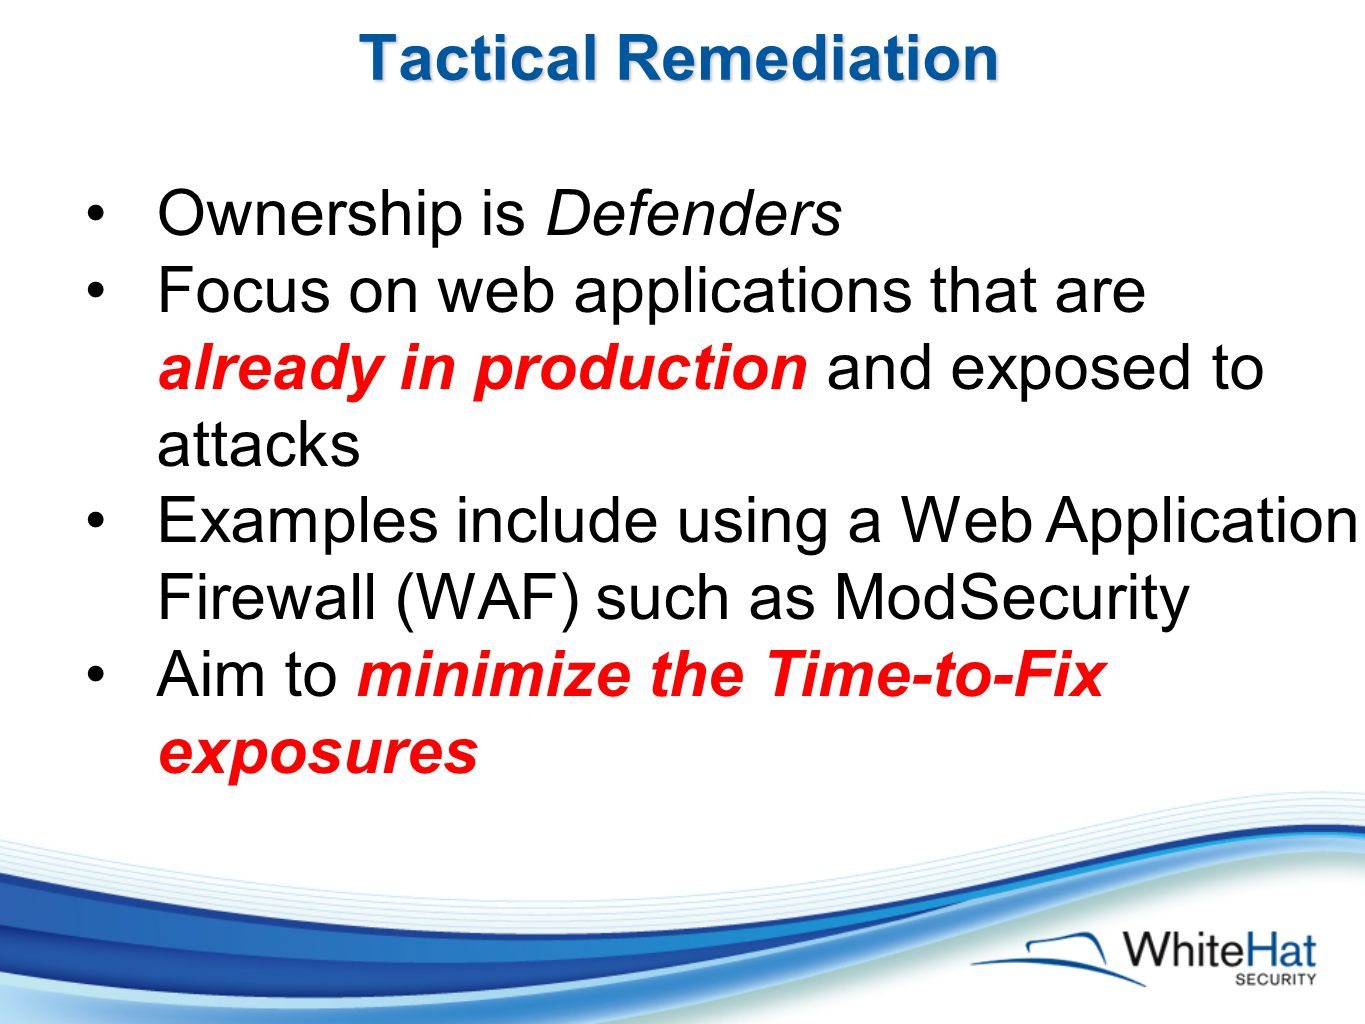 Tactical Remediation Ownership is Defenders Focus on web applications that are already in production and exposed to attacks Examples include using a Web Application Firewall (WAF) such as ModSecurity Aim to minimize the Time-to-Fix exposures